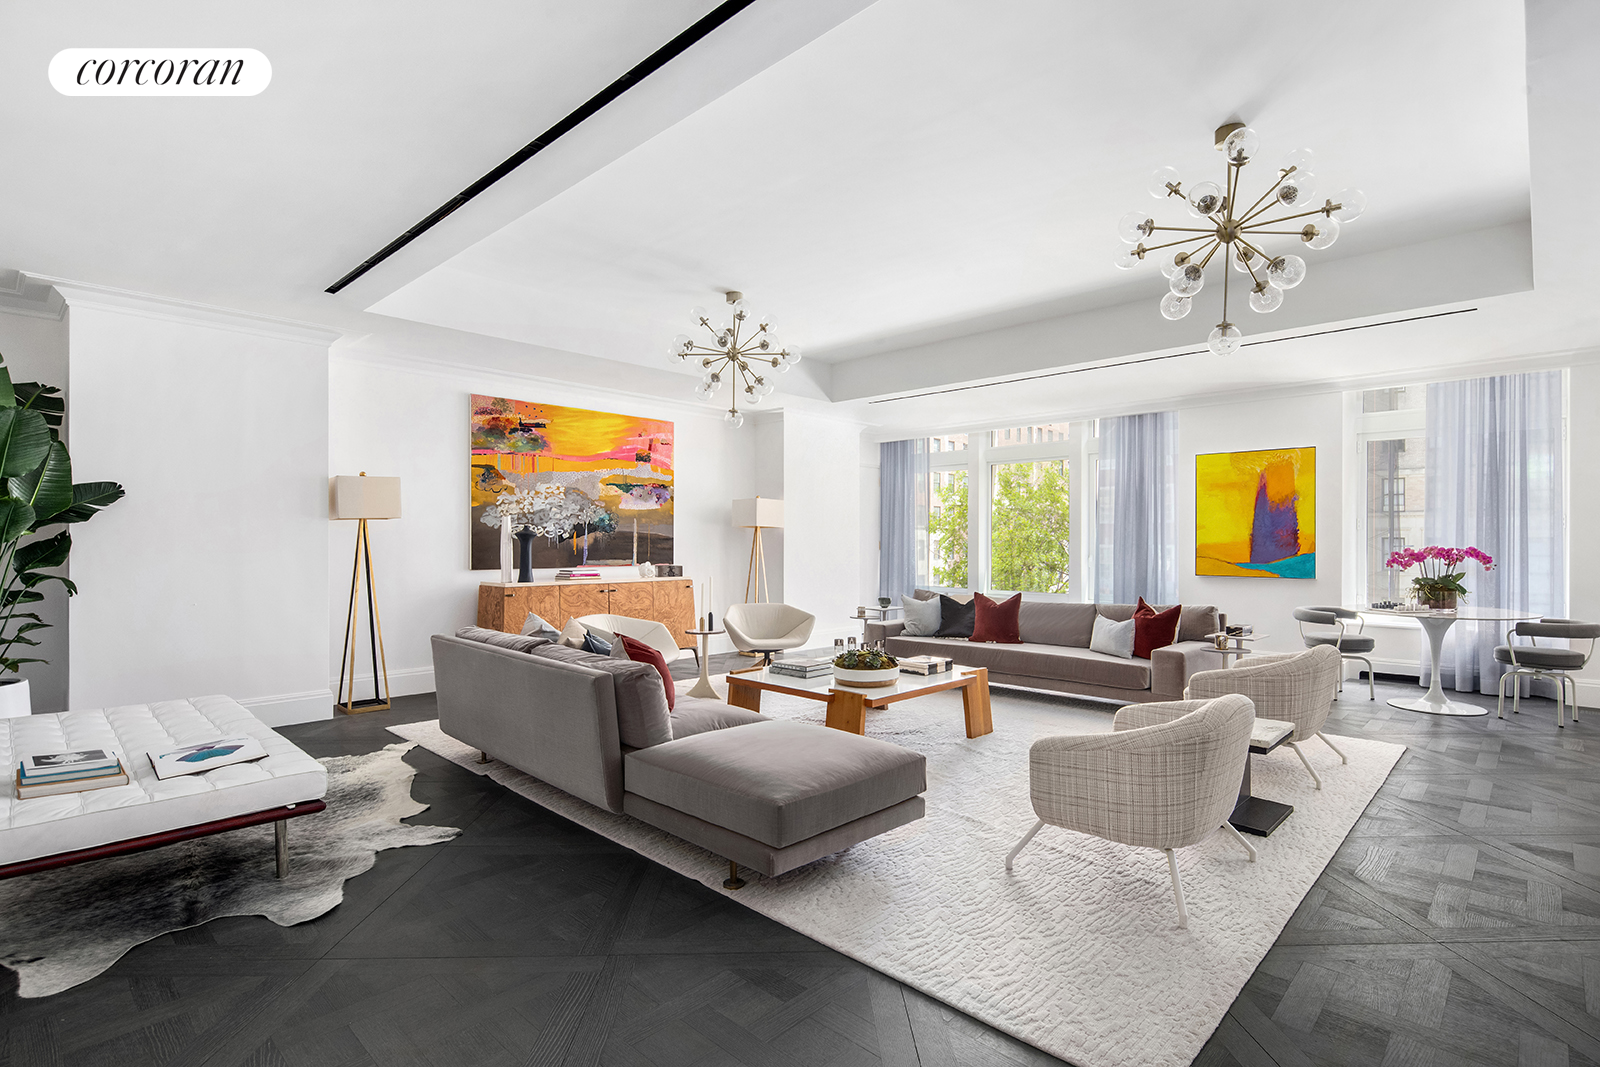 1010 PARK AVE Terrace Duplex, New York, NY 10028